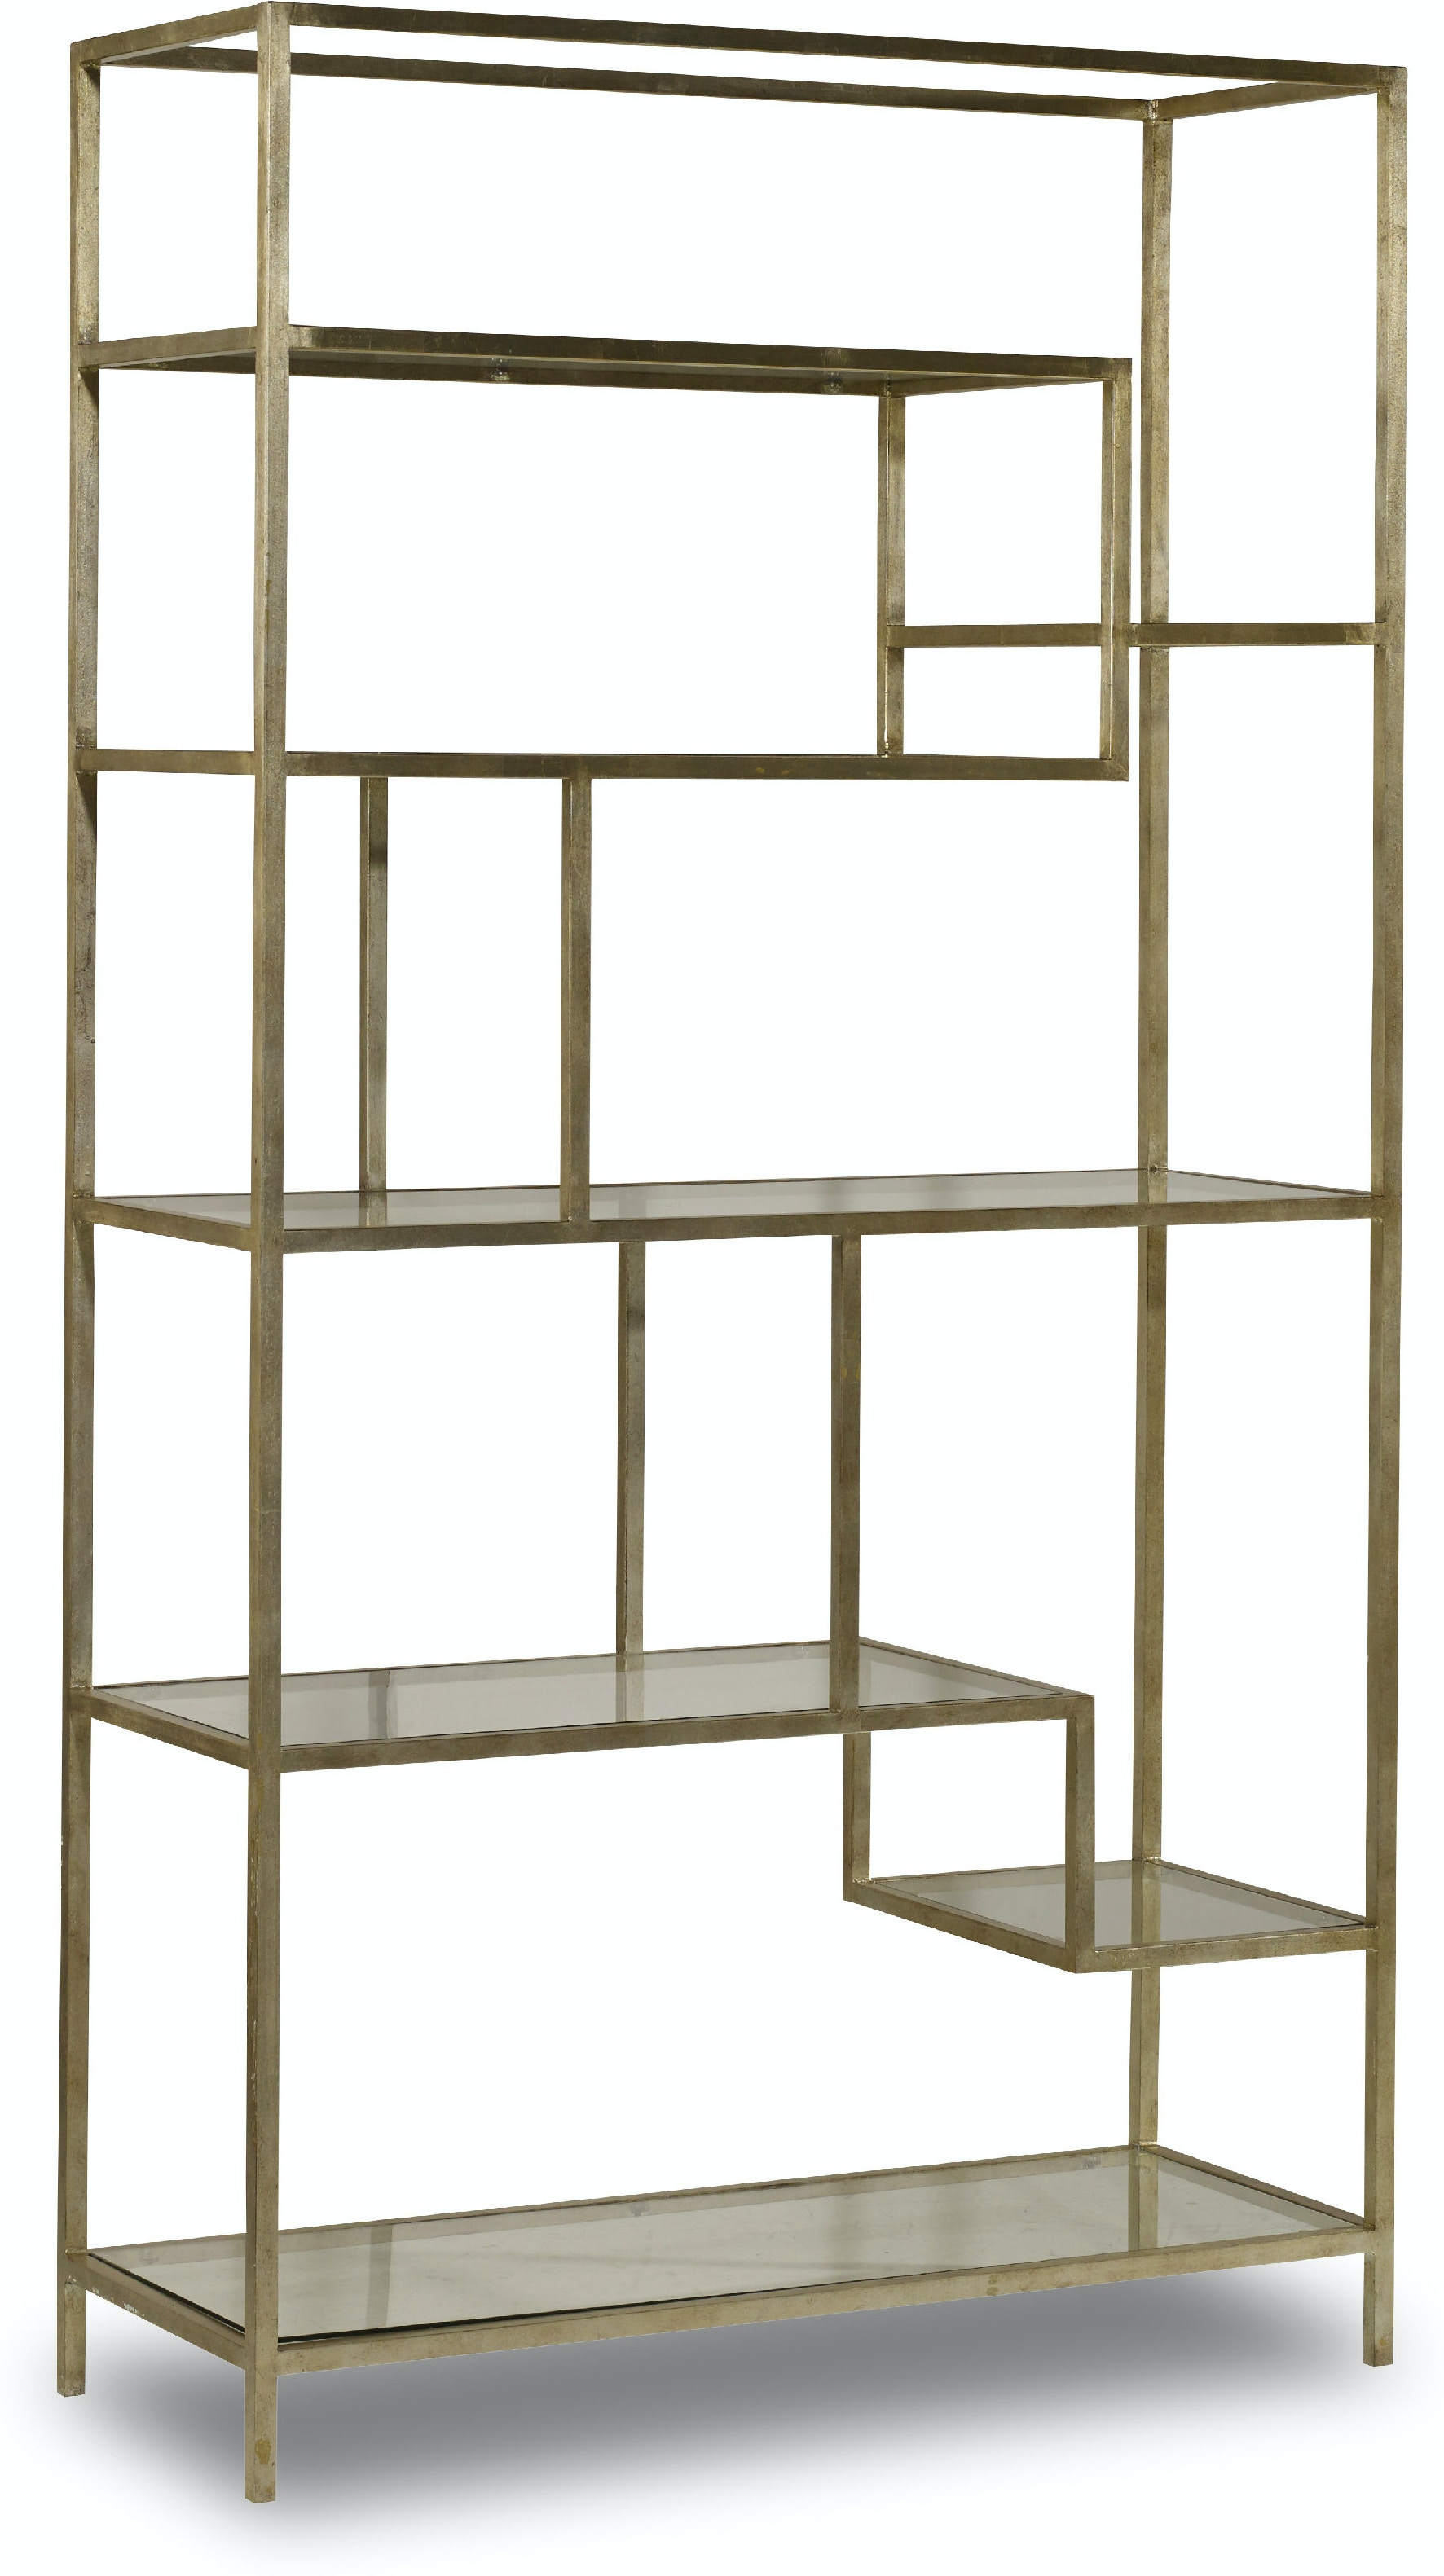 Hooker furniture home office etagere 500 50 934 hooker furniture etagere 500 50 934 solutioingenieria